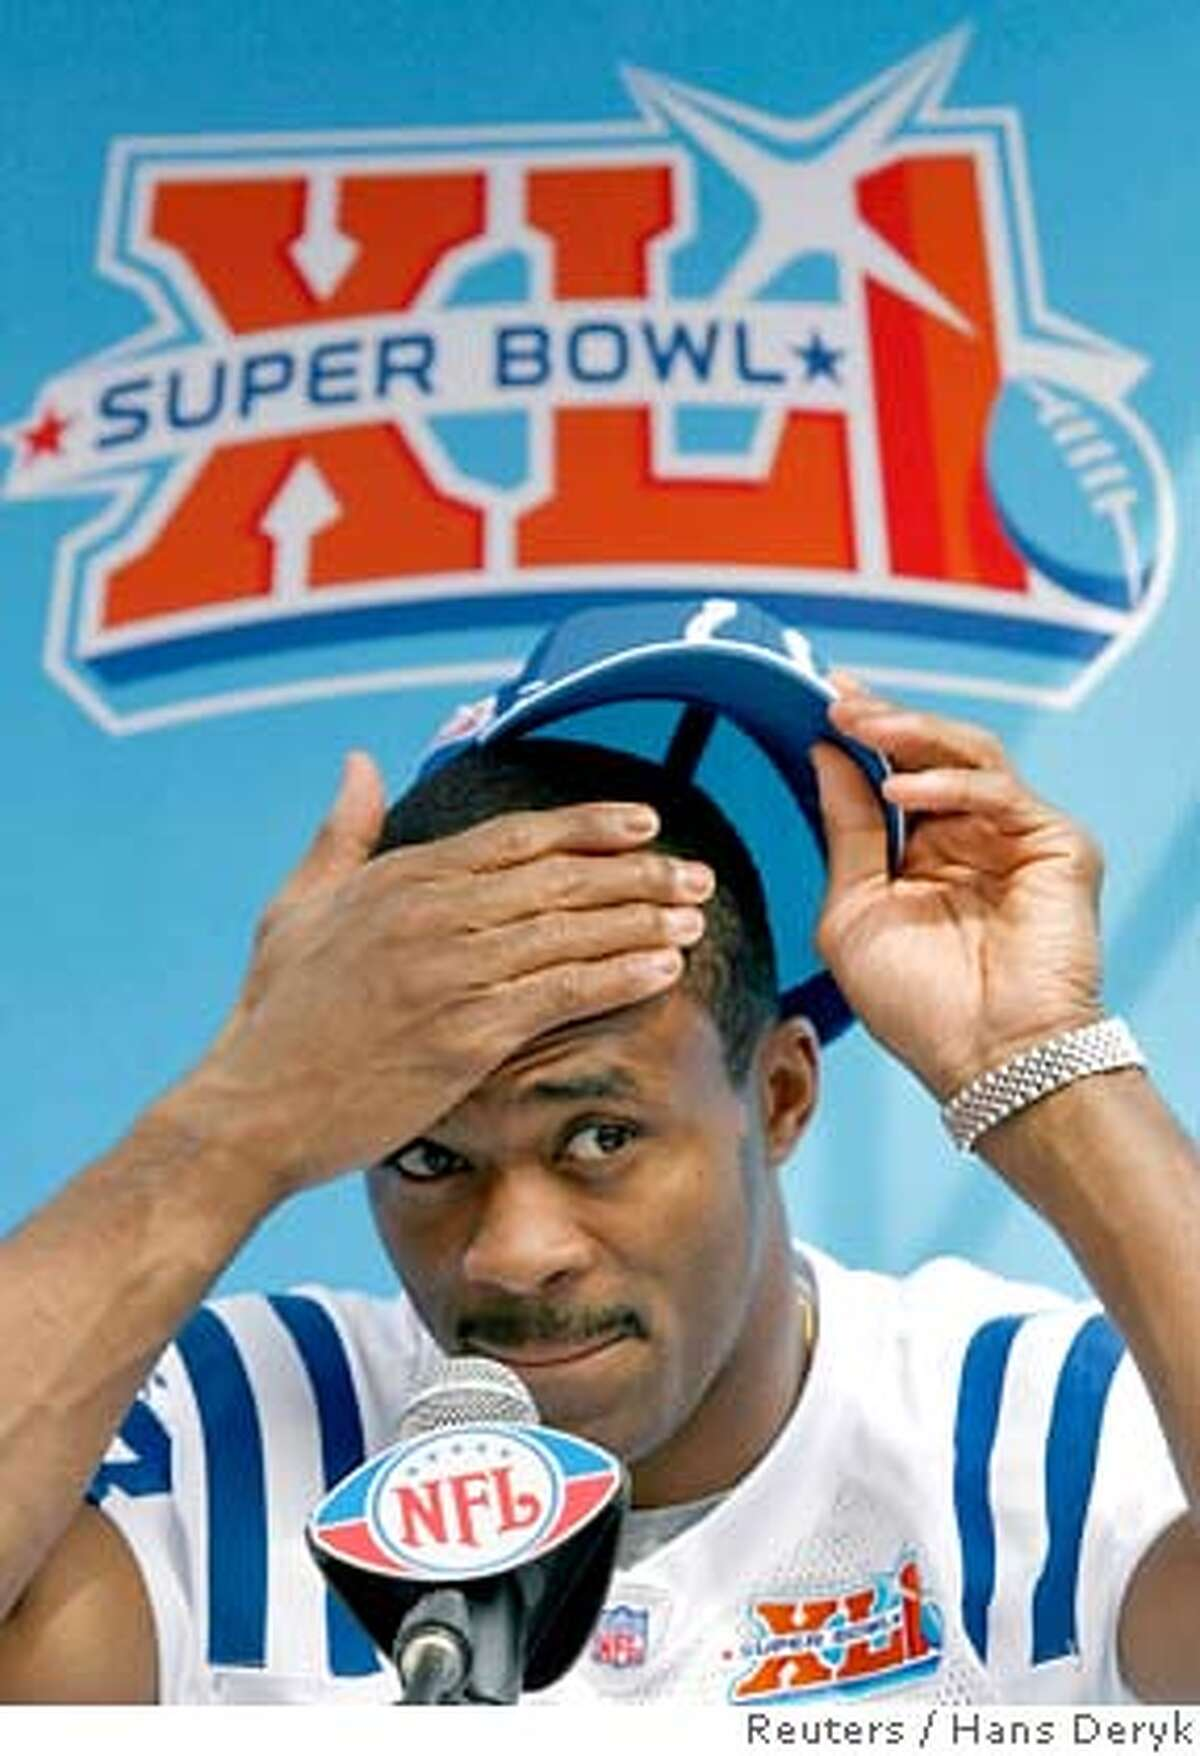 Indianapolis Colts receiver Marvin Harrison listens to a question during media day for the NFL's Super Bowl XLI football game in Miami January 30, 2007. The Colts will face the Chicago Bears in Super Bowl XLI on February 4. REUTERS/Hans Deryk (UNITED STATES)